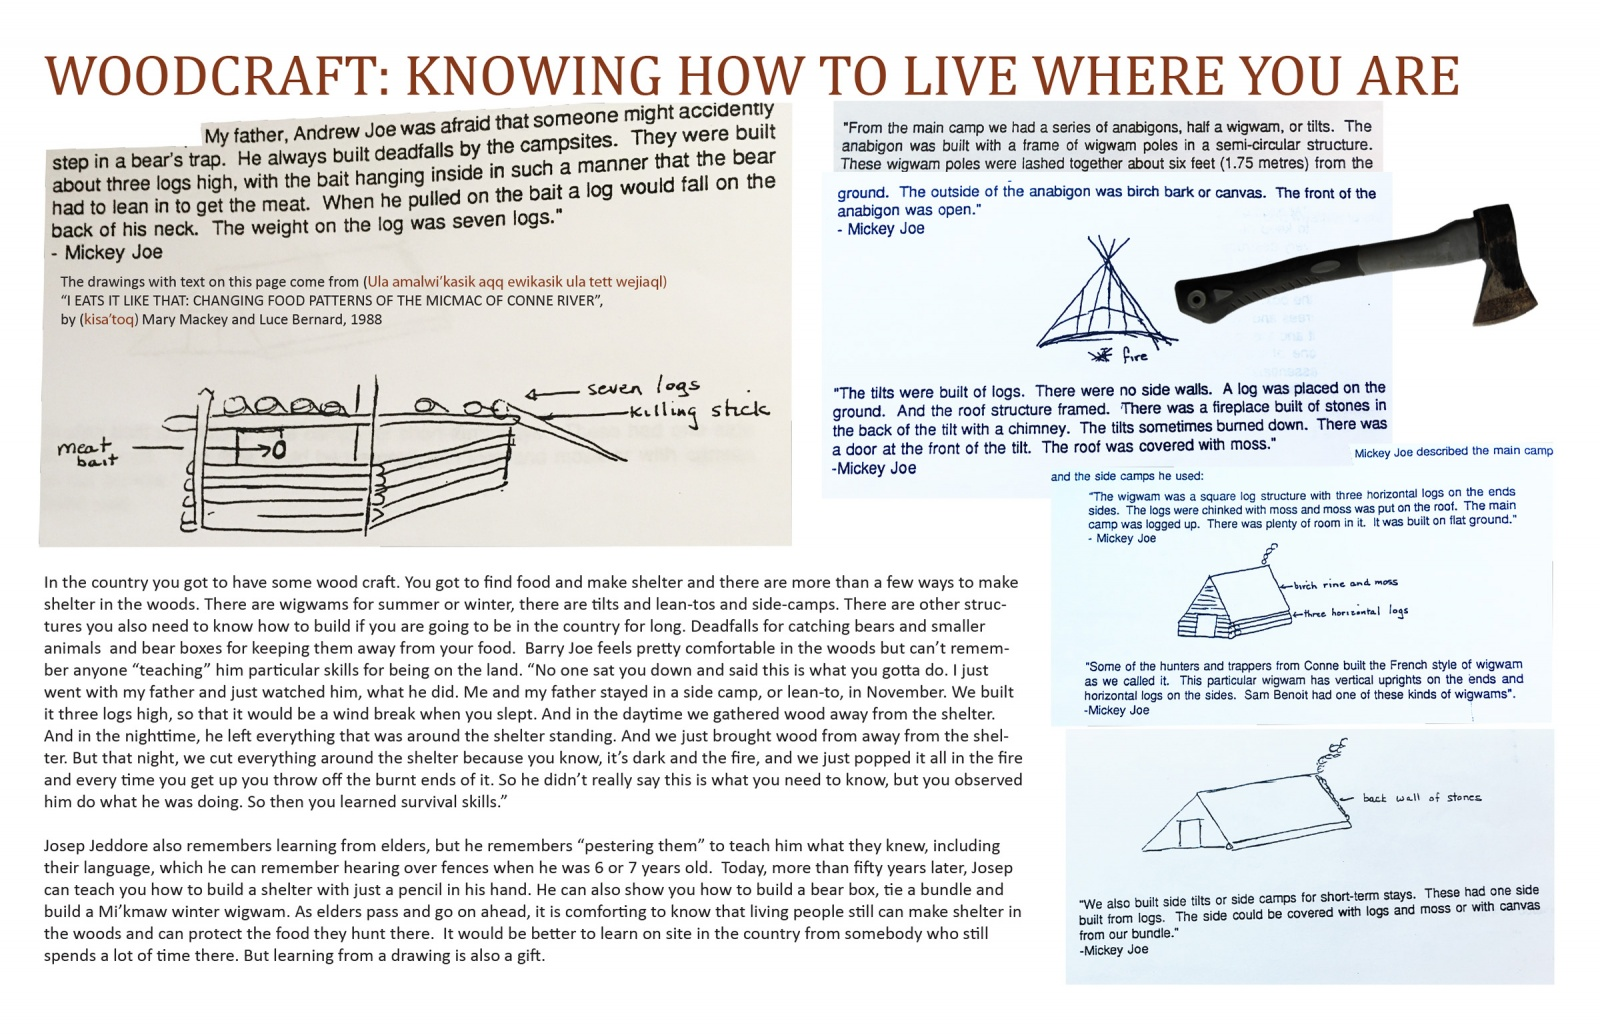 Woodcraft: Knowing How to Live Where You Are